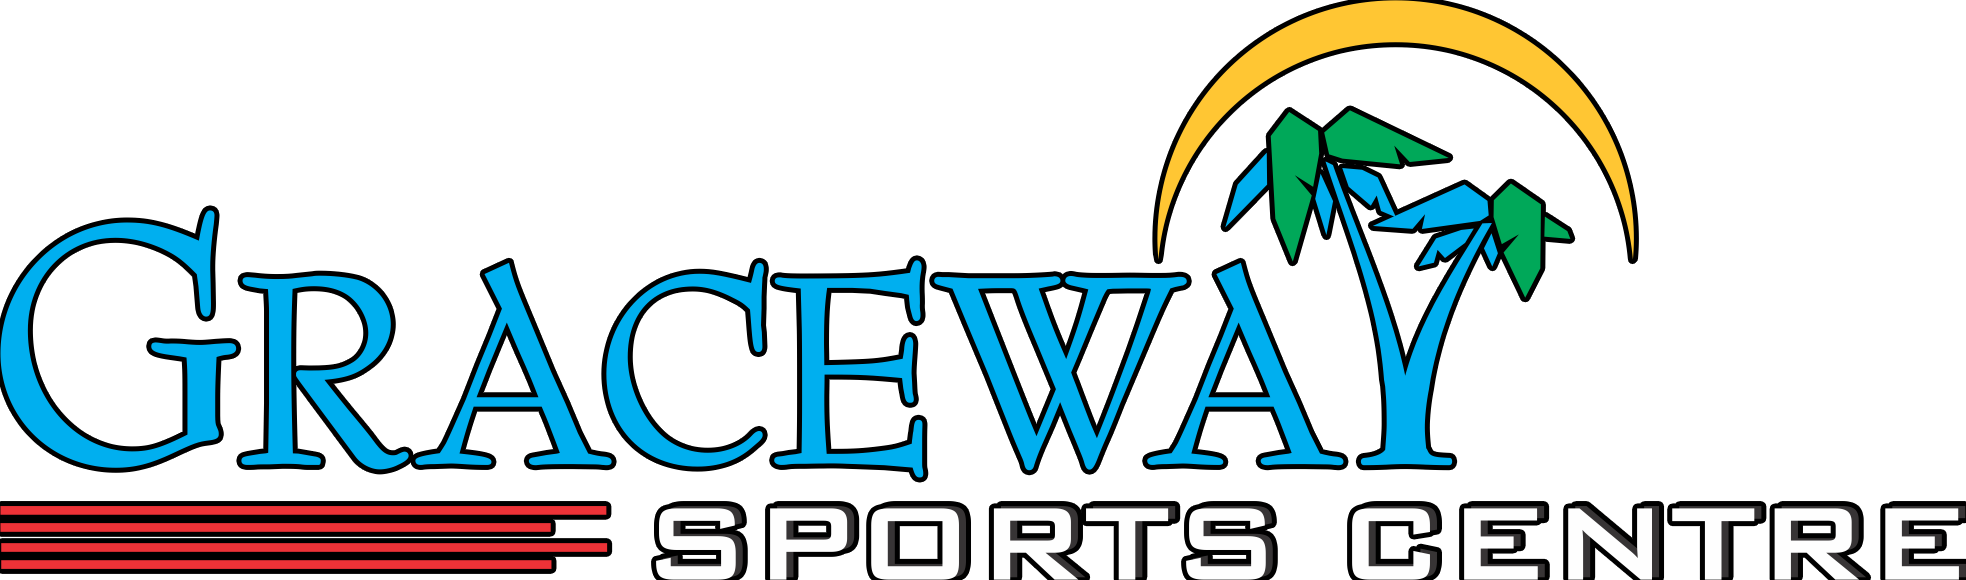 Racquet Games Archives — Graceway Sports Center